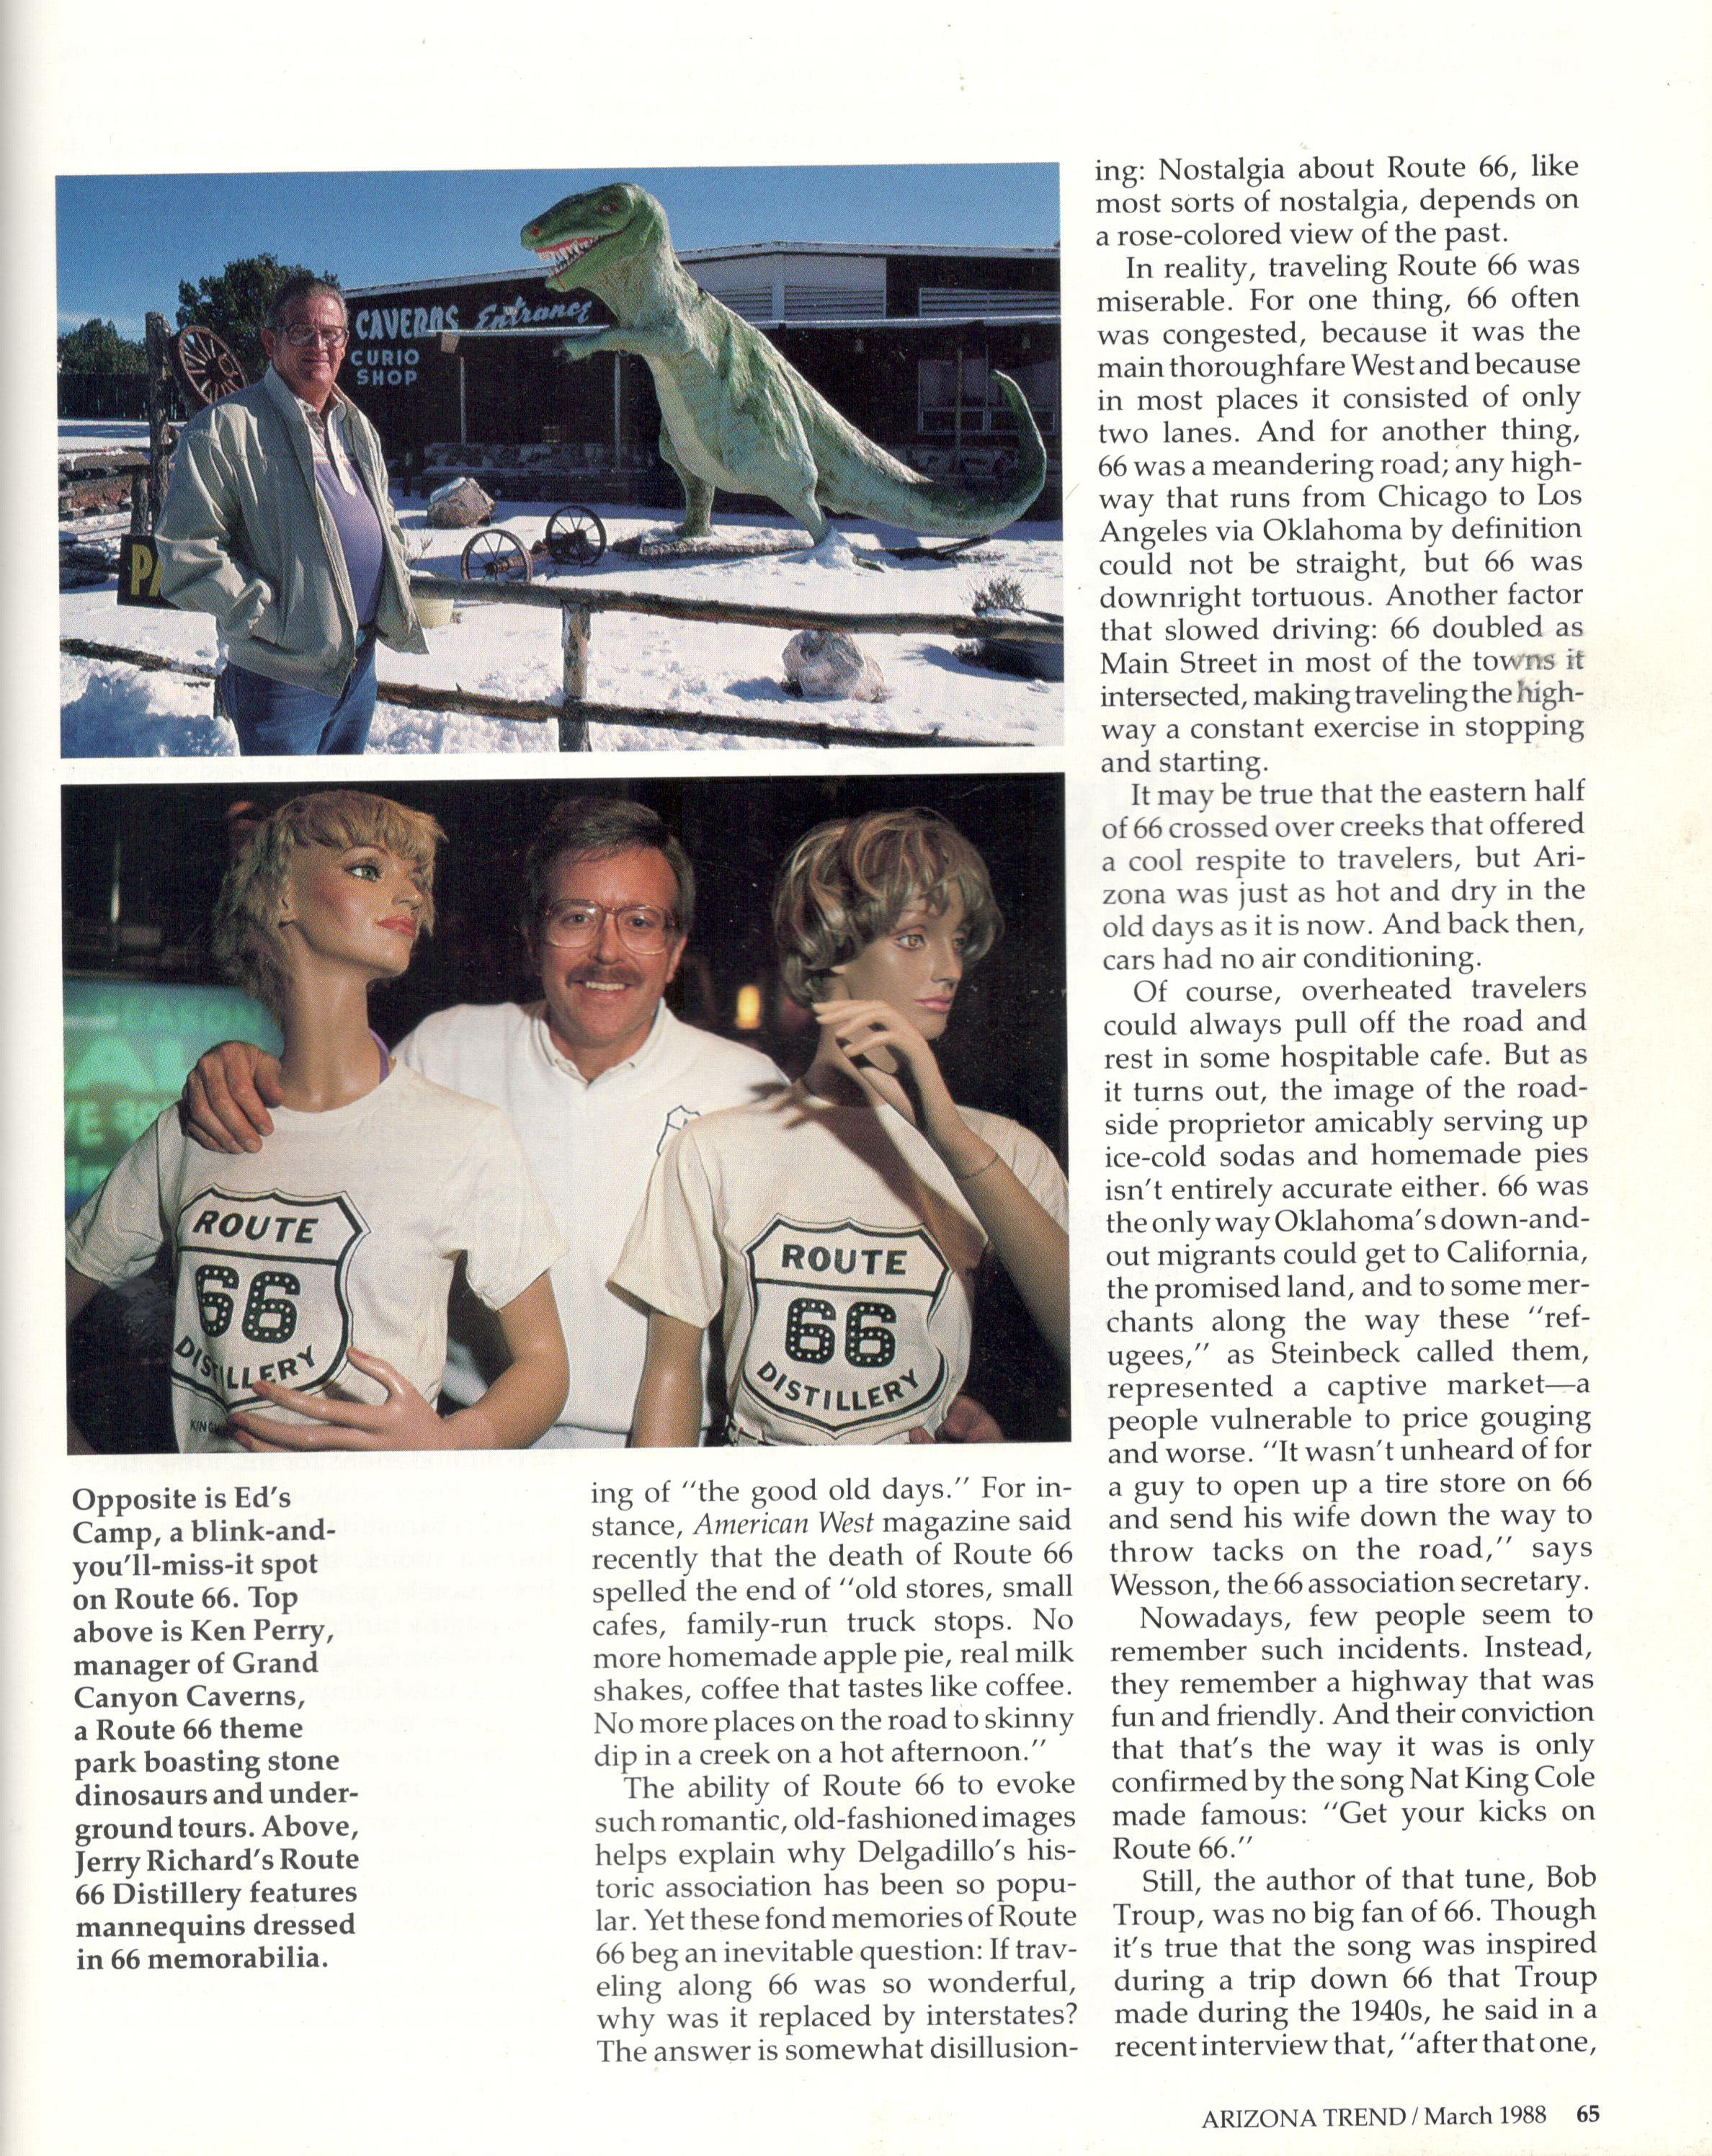 arizona-trend-march-1988-4.jpg